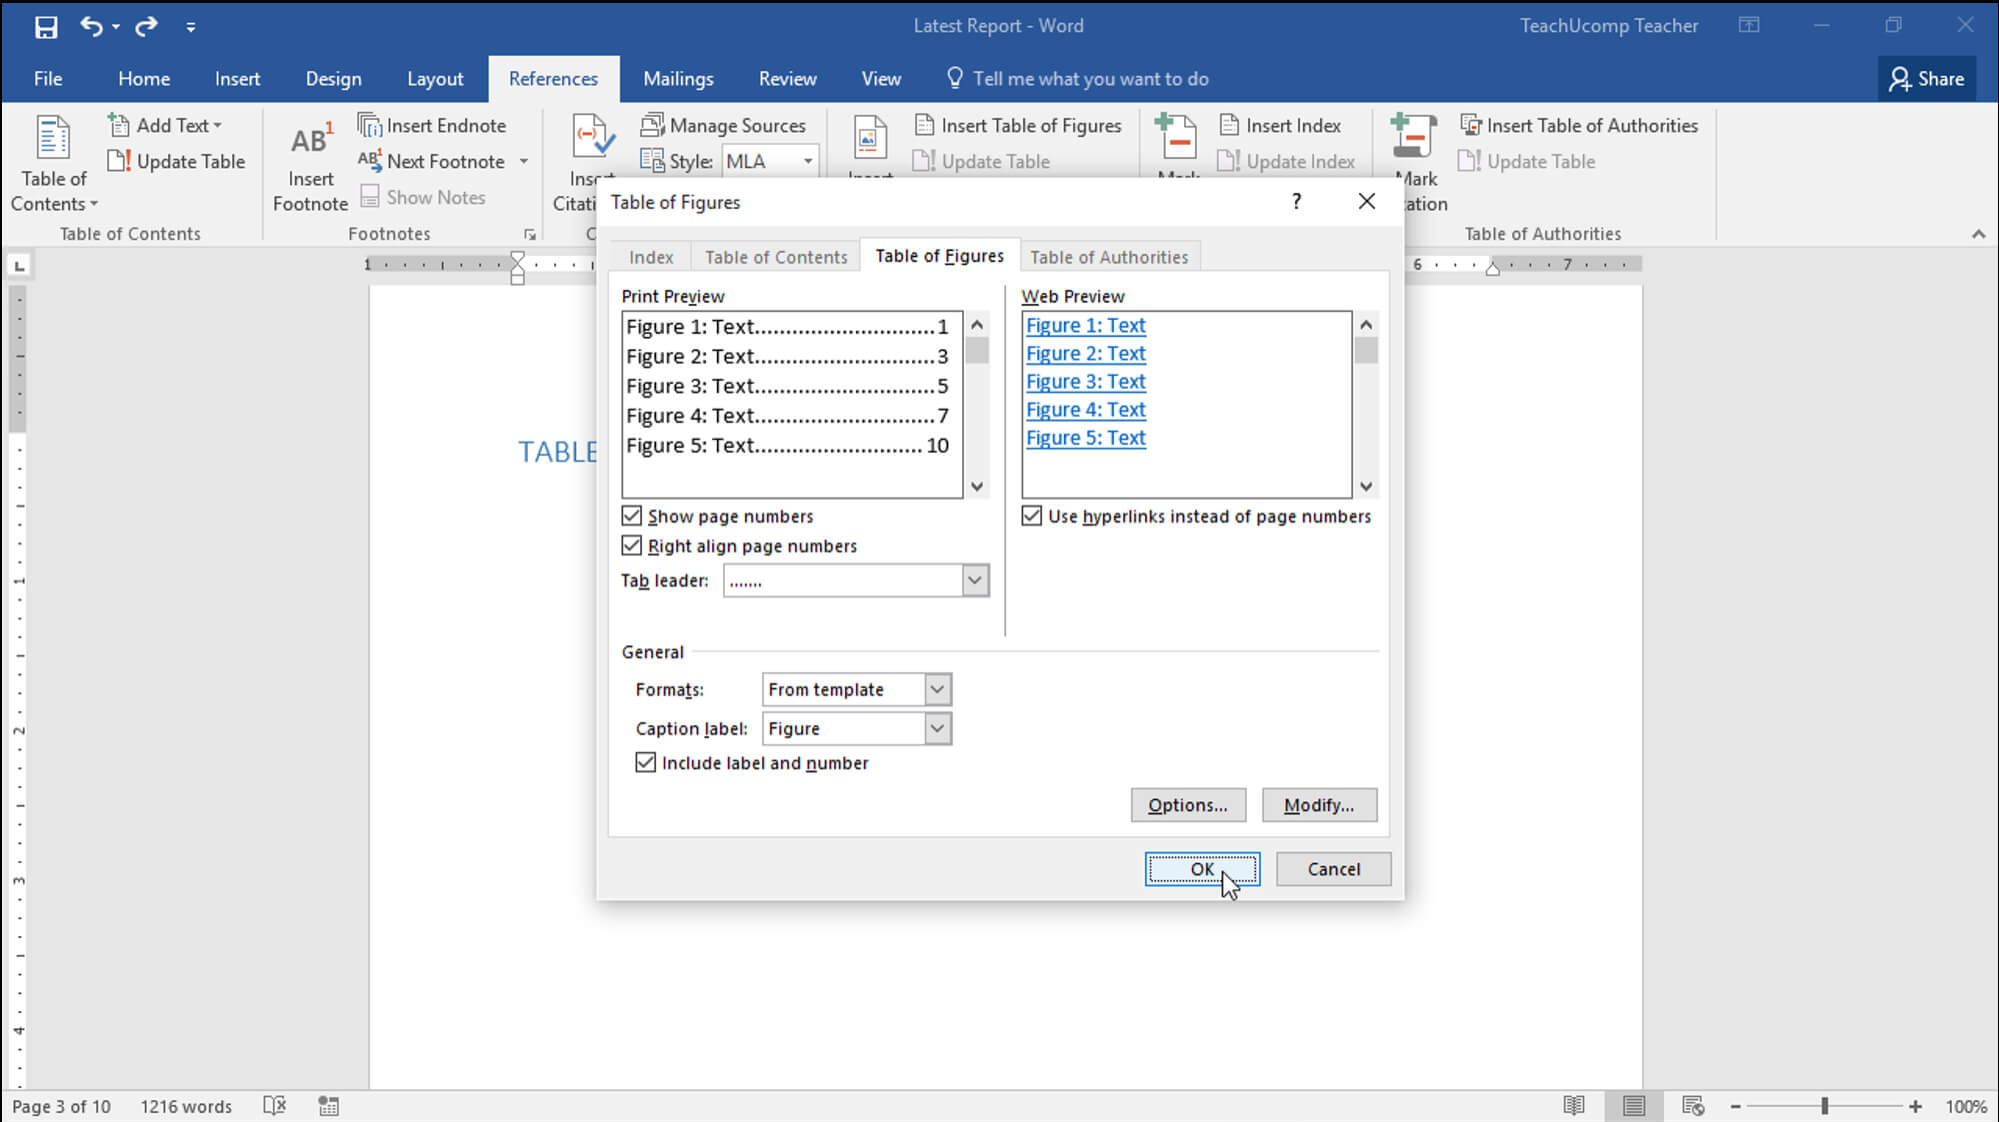 Insert A Table Of Figures In Word - Teachucomp, Inc. Intended For Microsoft Word Table Of Contents Template